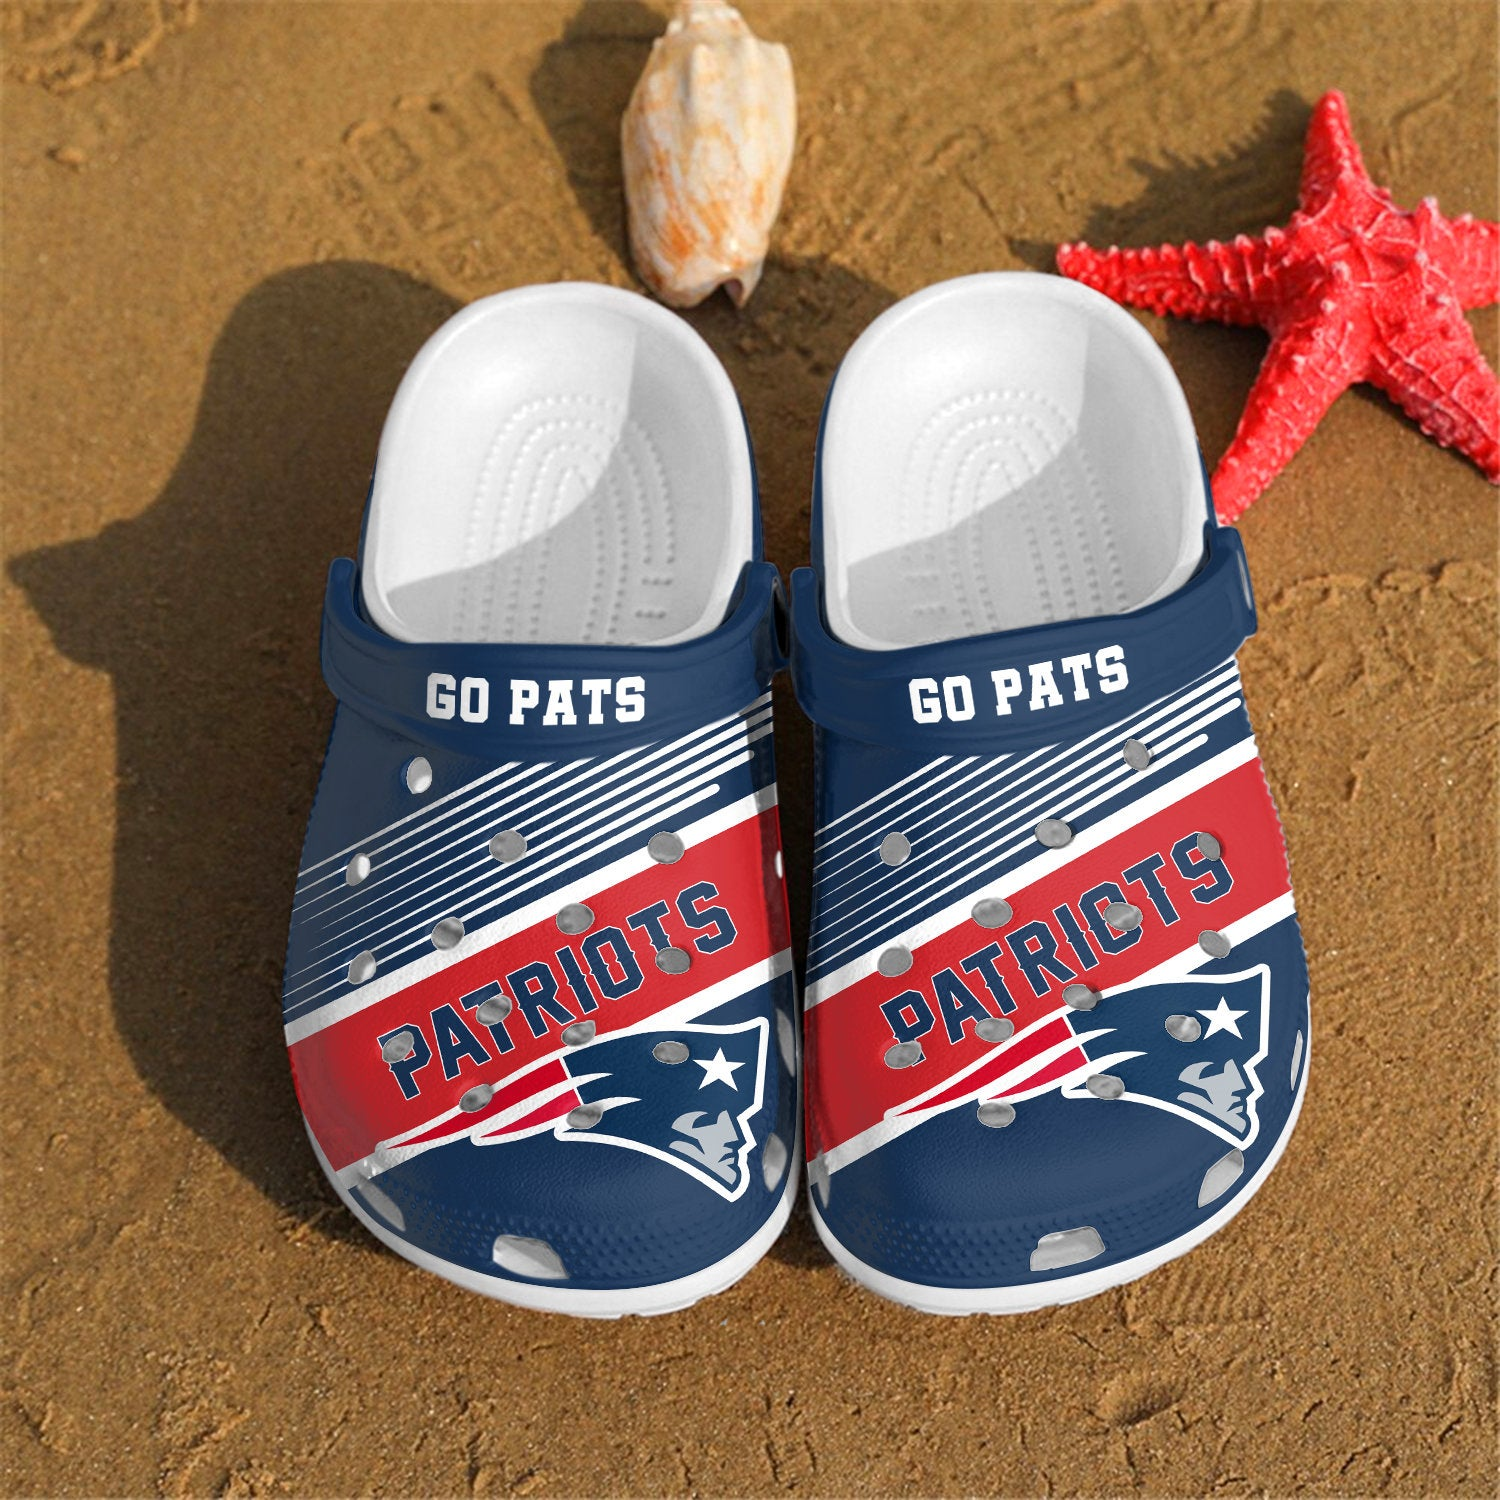 New England Patriots Go Pats Custom For Nfl Fans Crocs Clog Shoes